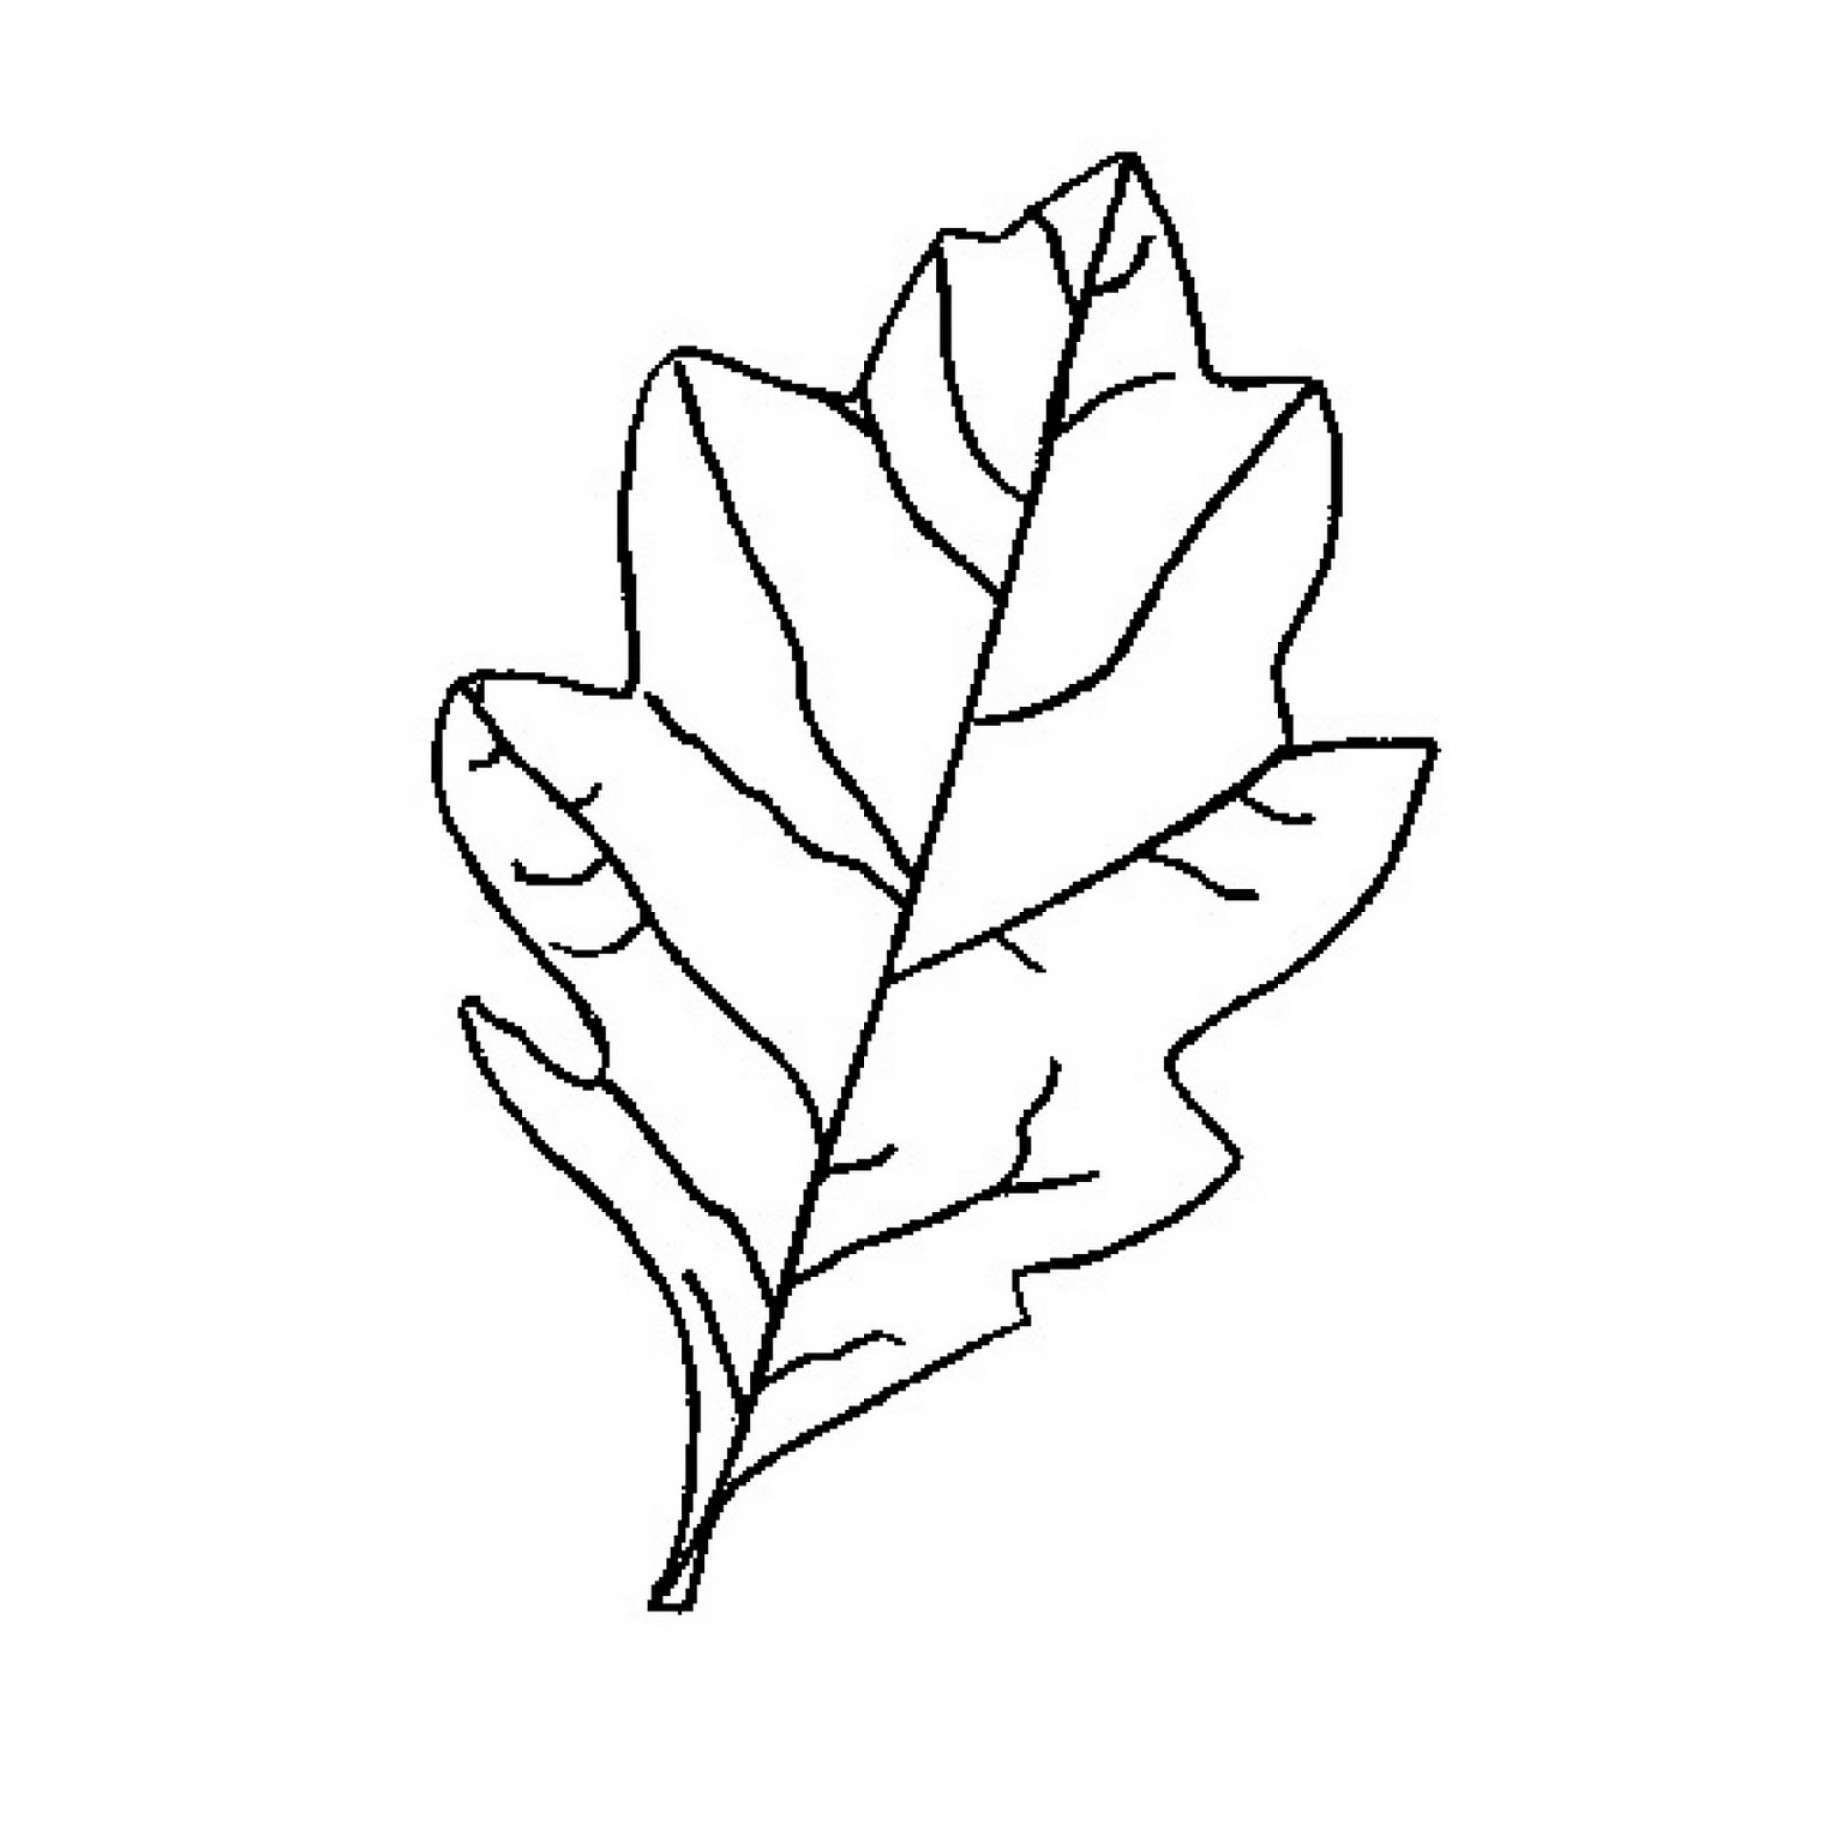 hight resolution of how to draw an oak leaf oak leaf outline printable clipart free to use clip art resource